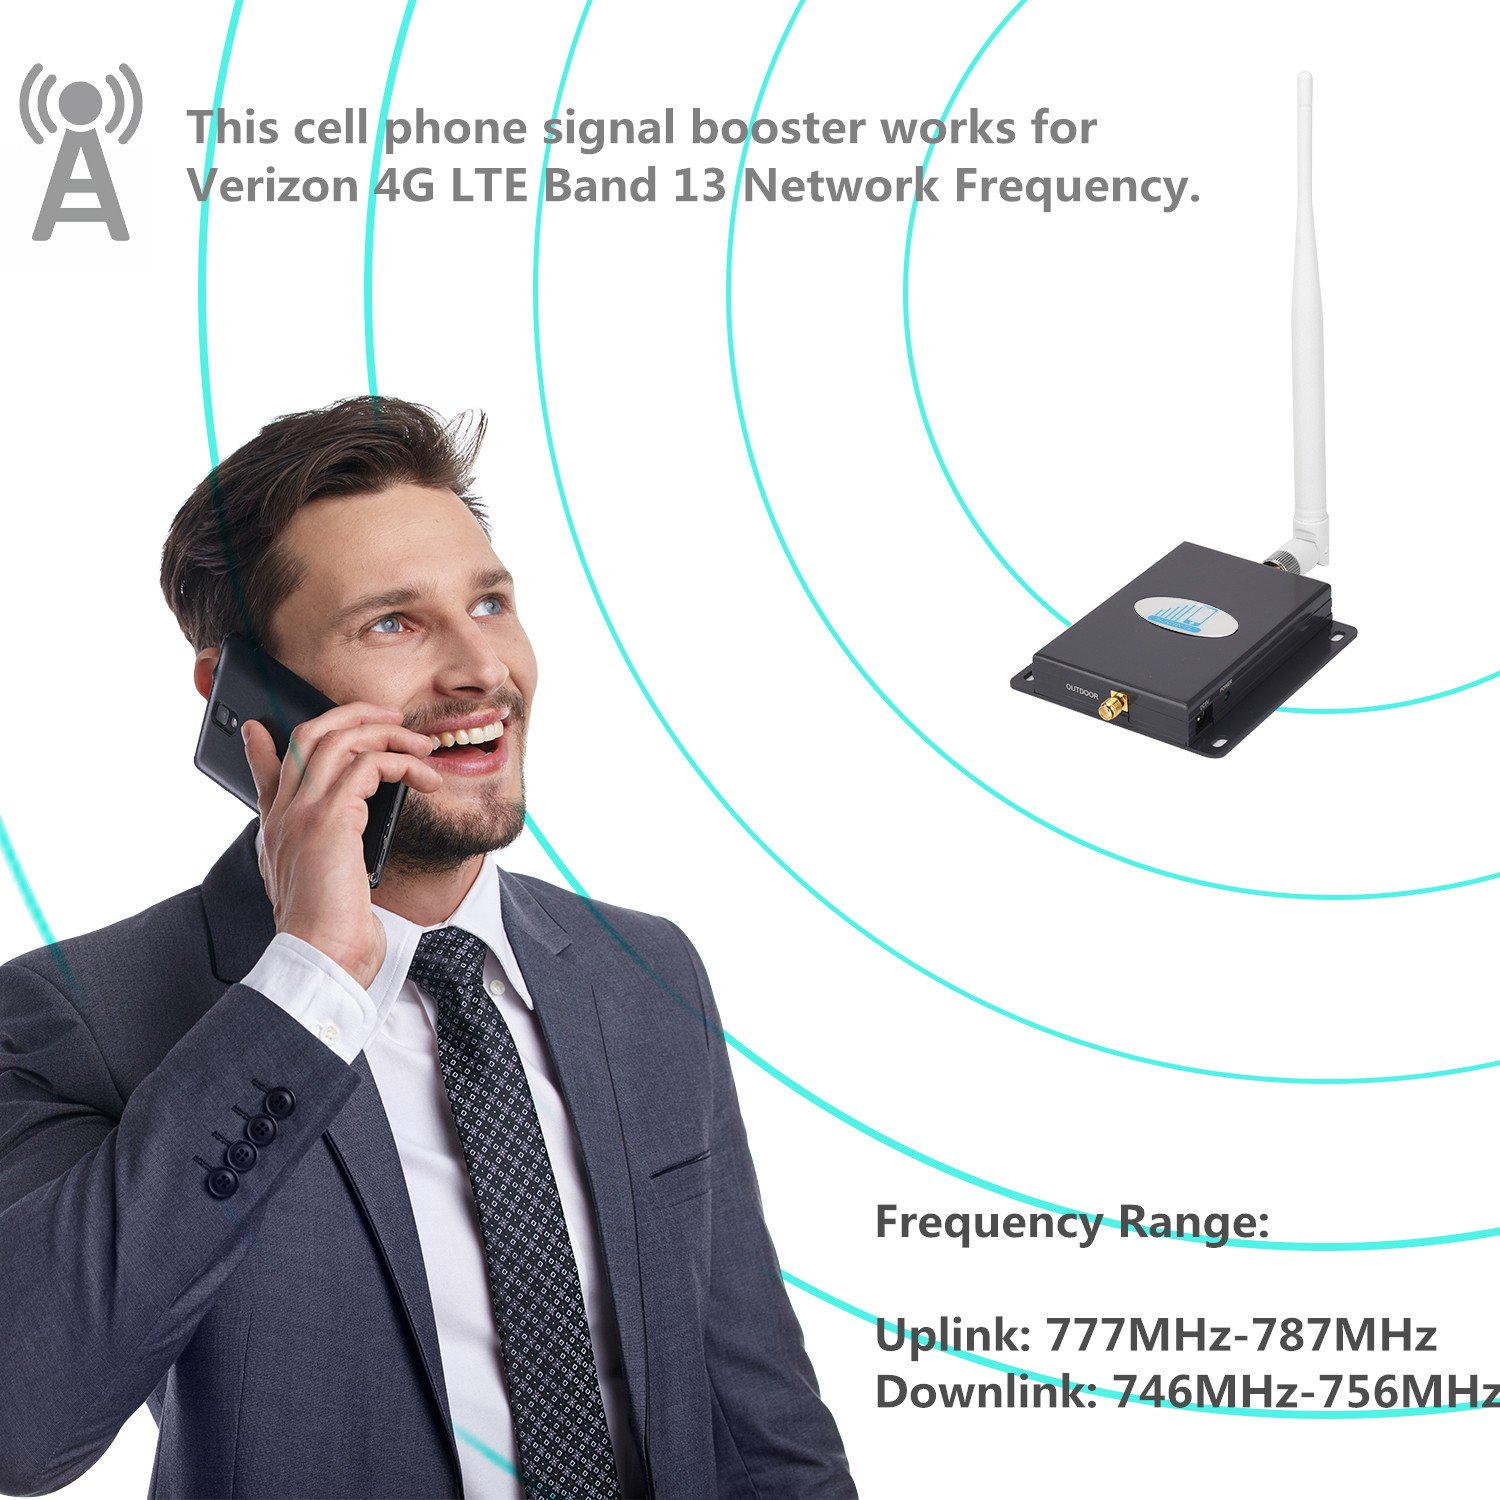 Cell Phone Signal Booster 4G Lte Verizon Cell signal Booster HJCINTL High Gain 65dB Band13 700MHz Home Mobile Phone Signal Booster Amplifier with Yagi/Whip by HJCINTL (Image #3)